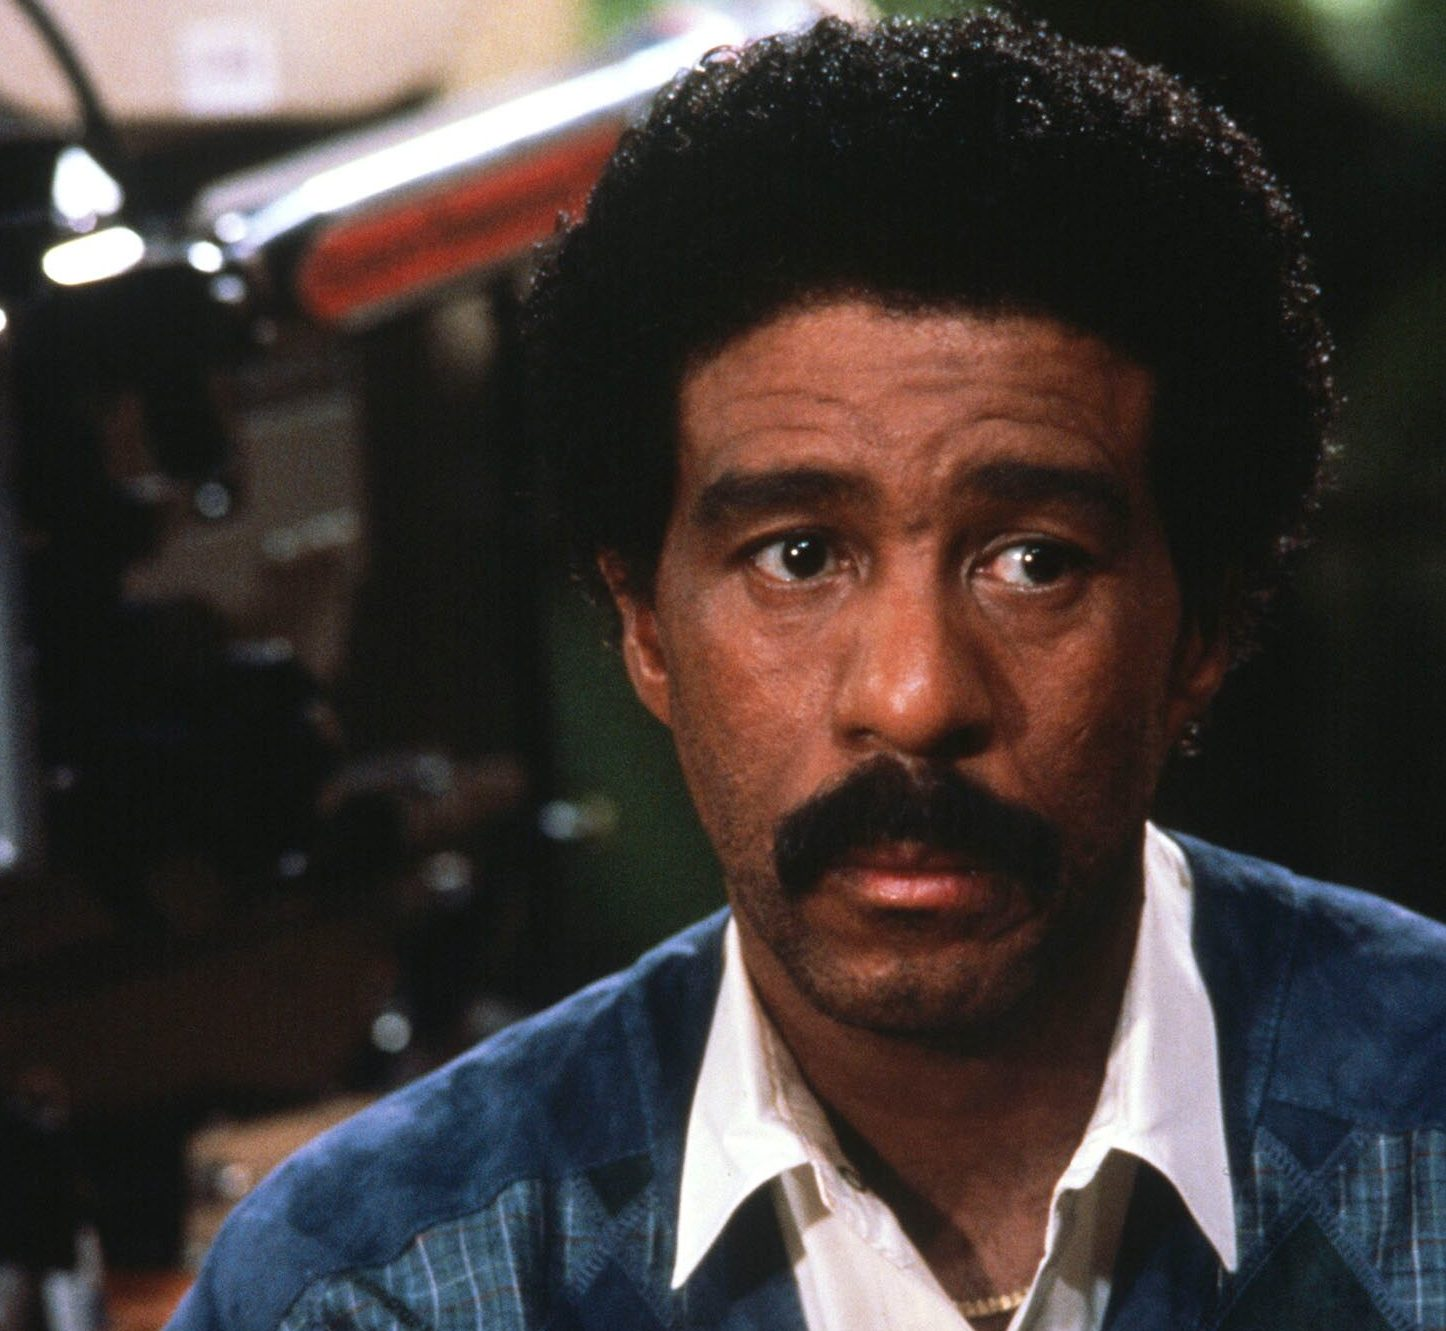 jo jo dancer 23 e1606821465420 20 Things You Might Not Have Known About Richard Pryor